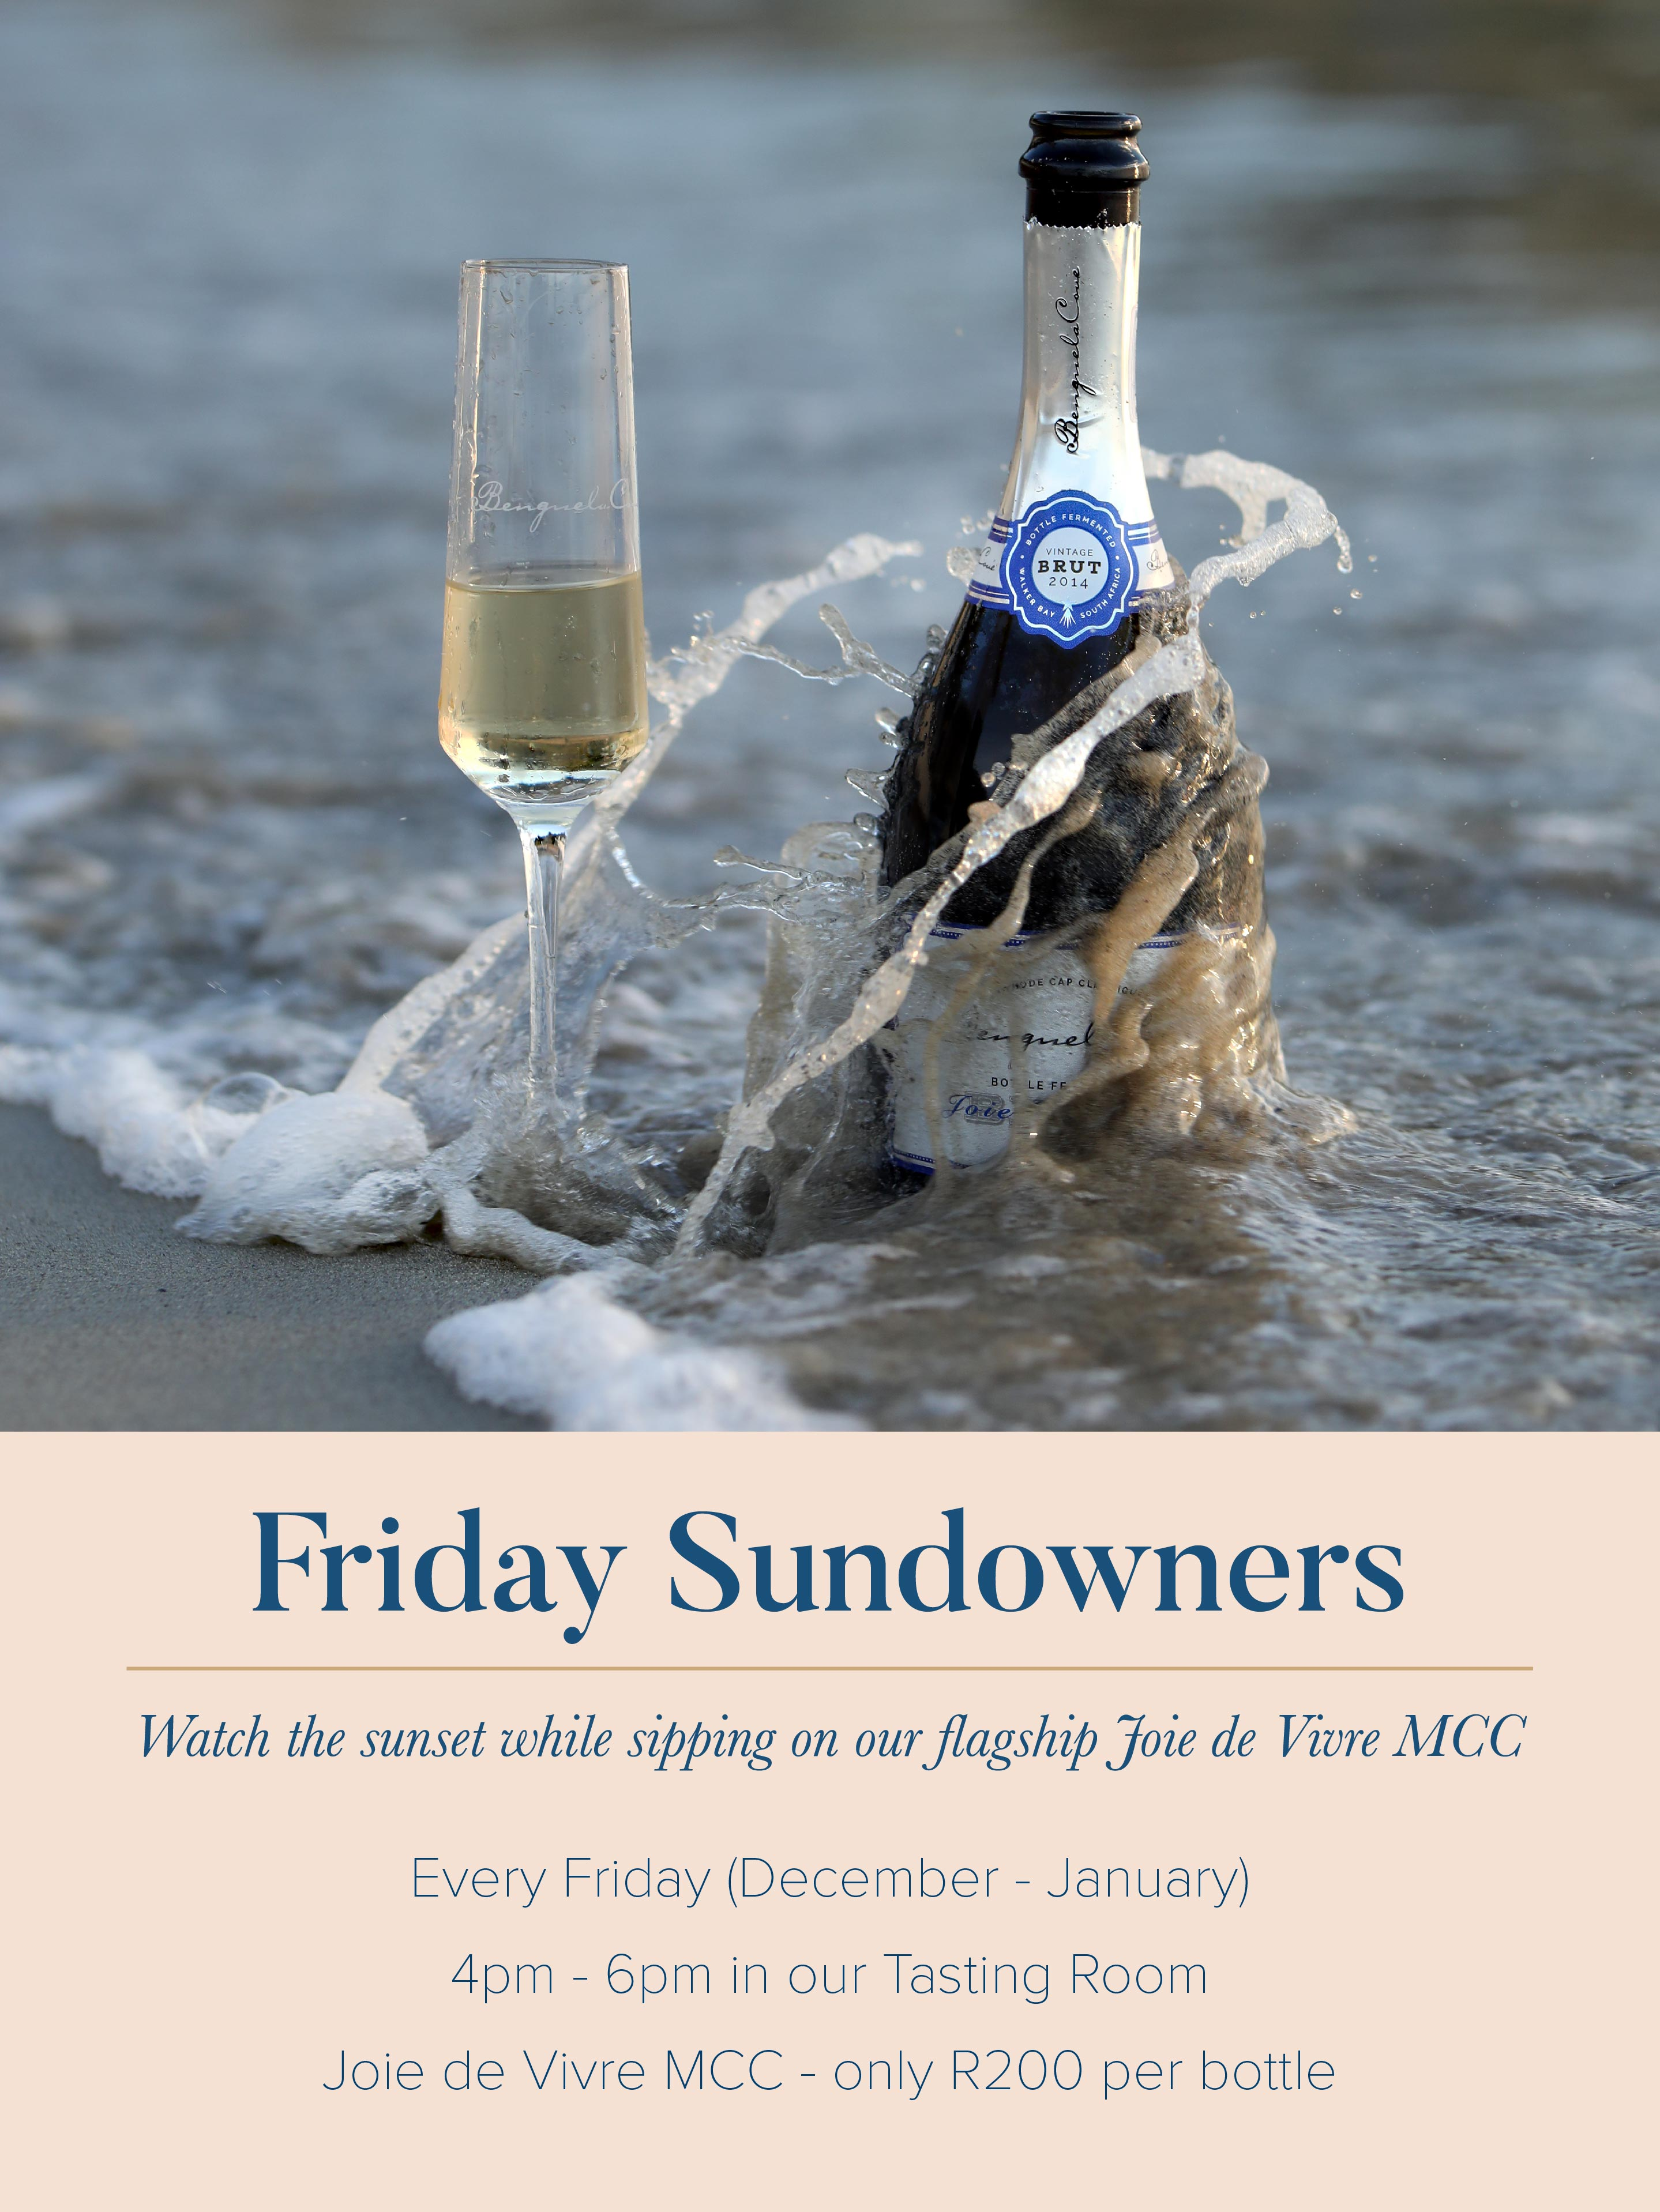 Watch the sunset while sipping on Benguela Cove's flagship Joie de Vivre MCC photo